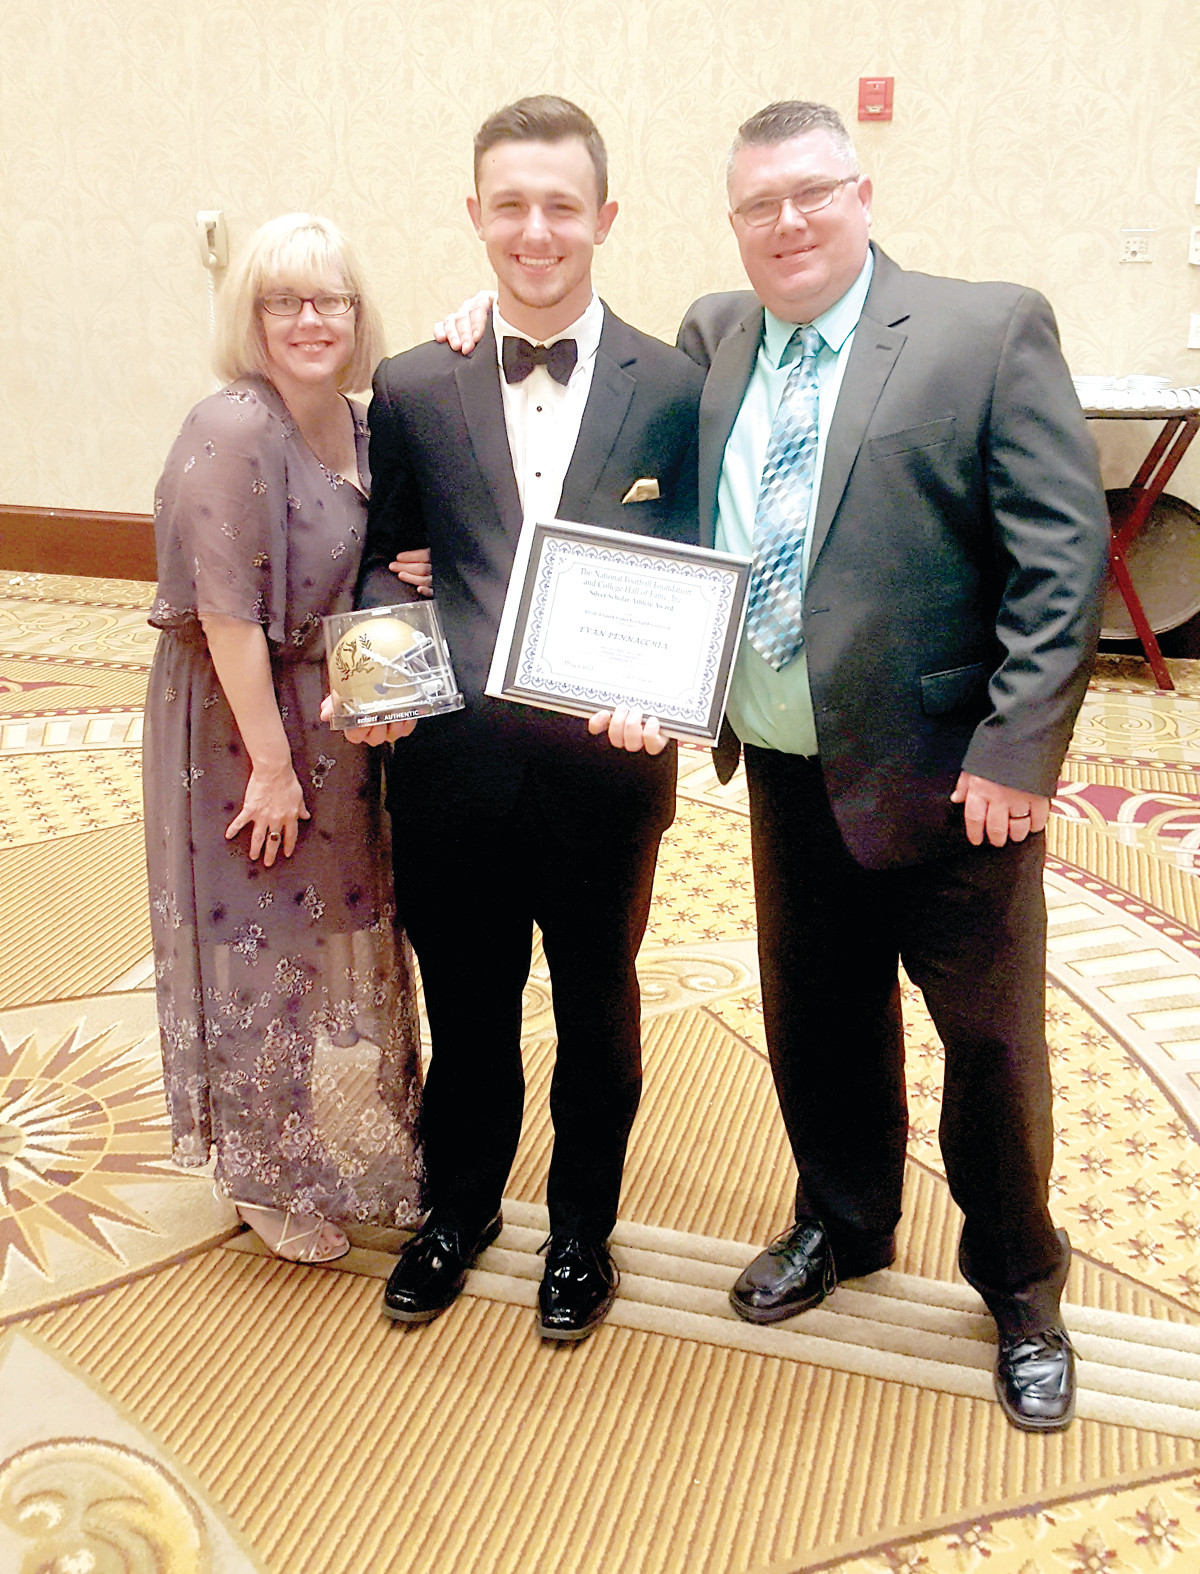 PROUD PARENTS: JHS senior Evan Pennacchia is joined by his mother and father, Shae and Albert Pennacchia, at the recent R.I. Chapter of the National Football Foundation and Hall of Fame Awards Dinner.